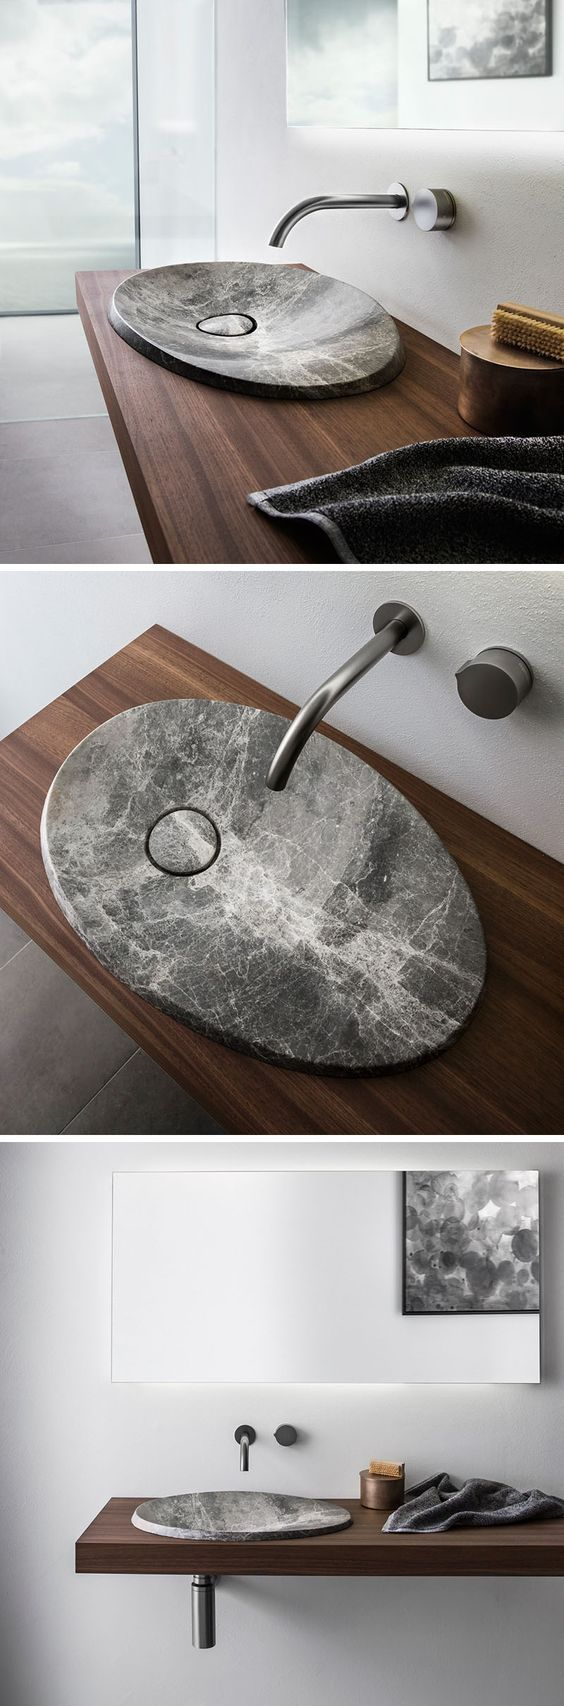 the design of this natural stone sink is inspired by the shape of craters left from a volcano modern bathroom